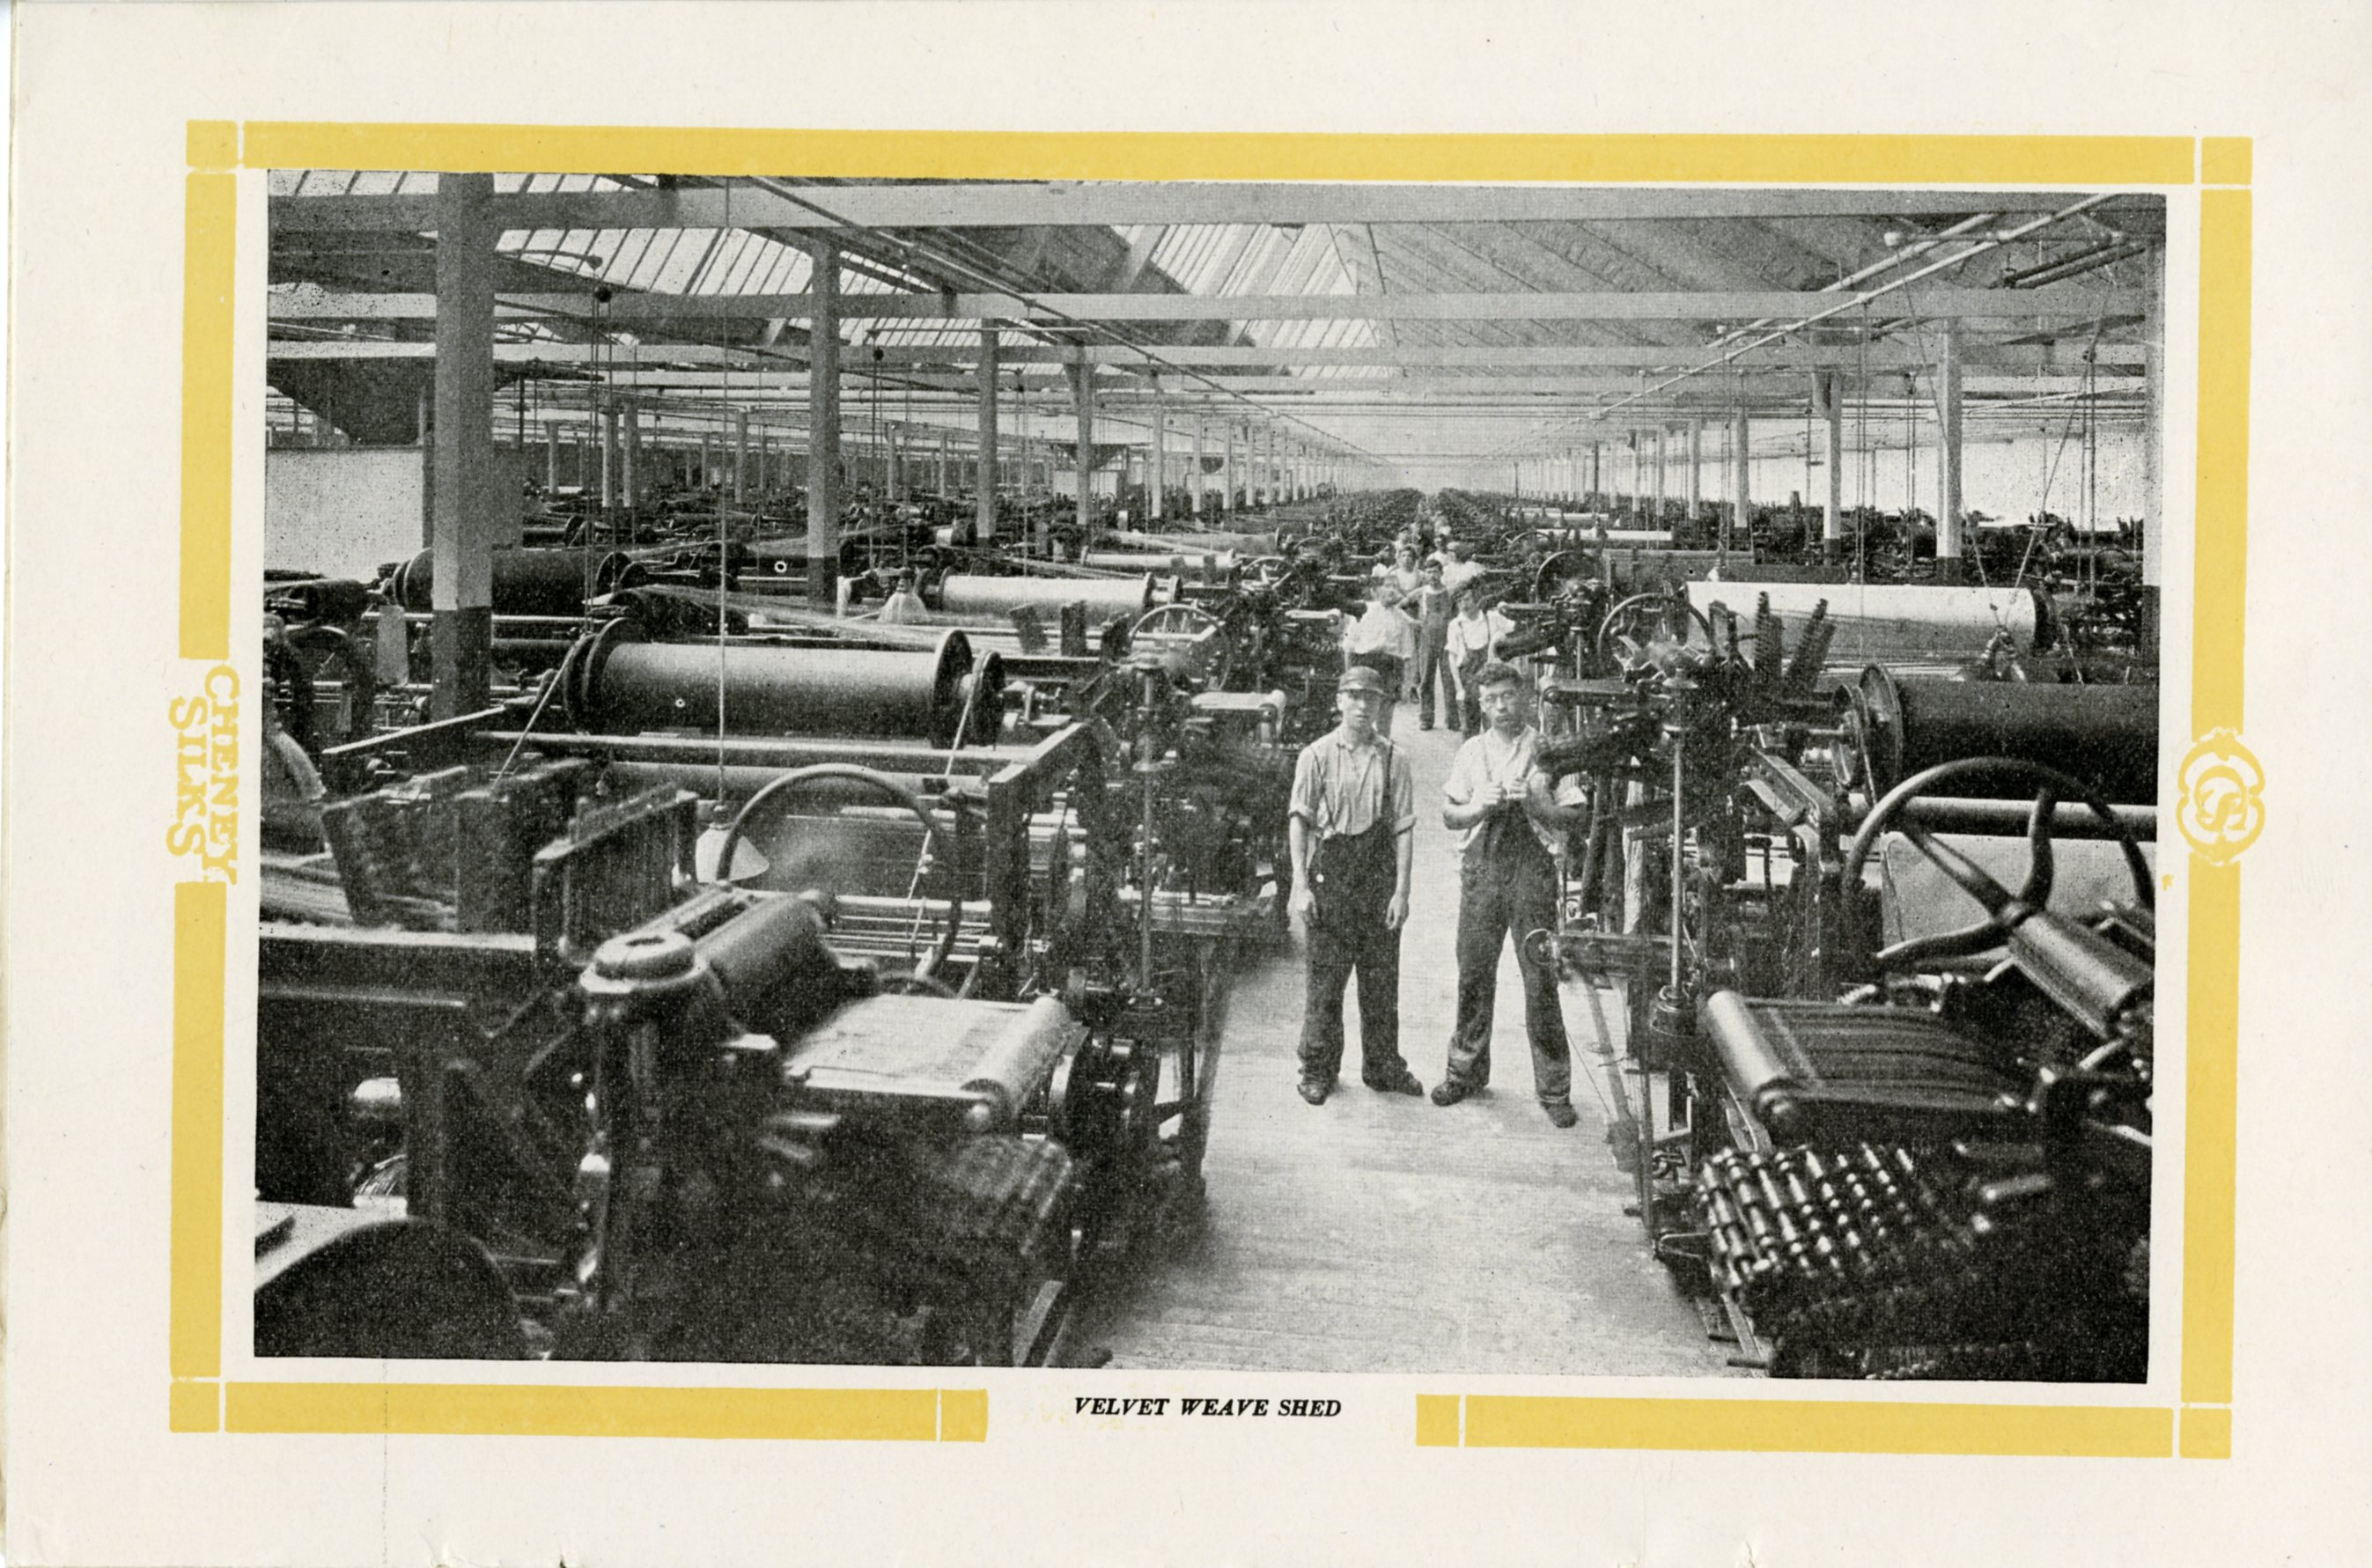 Photograph of the Velvet Weave Shed of Cheney Brother Silk Manufacturing Company